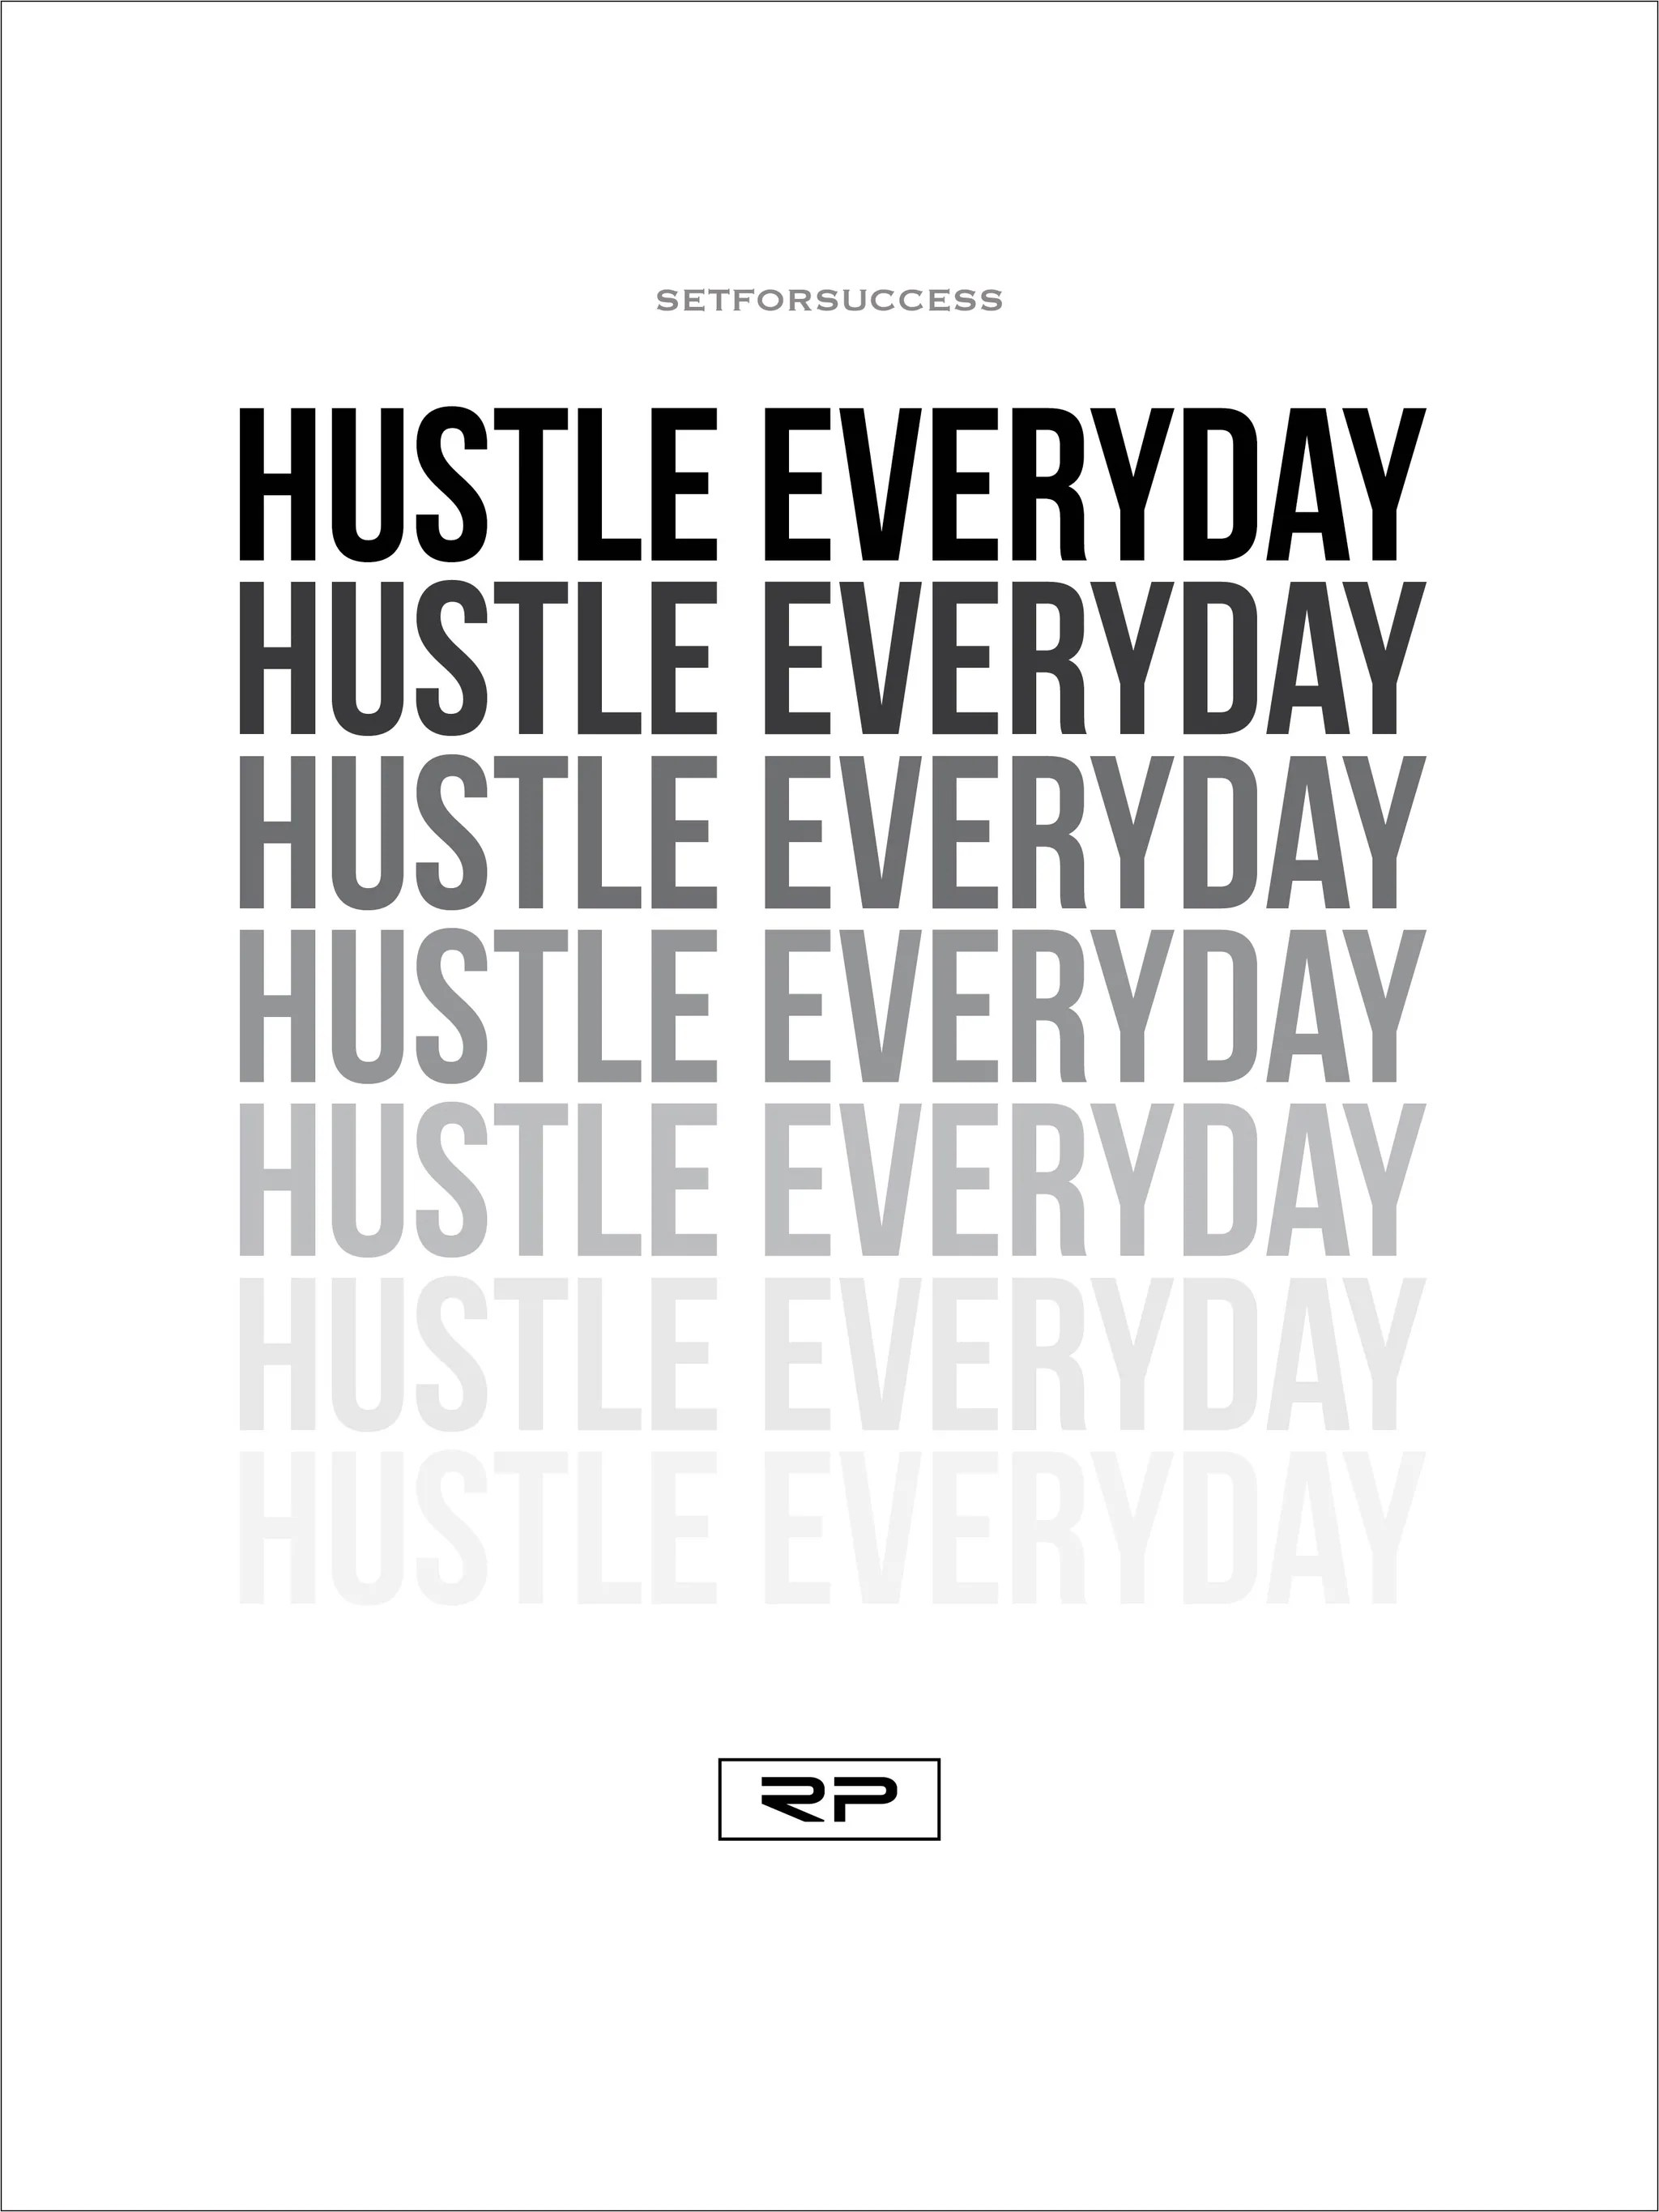 Foto 18x24 Hustle Everday 18x24 Poster